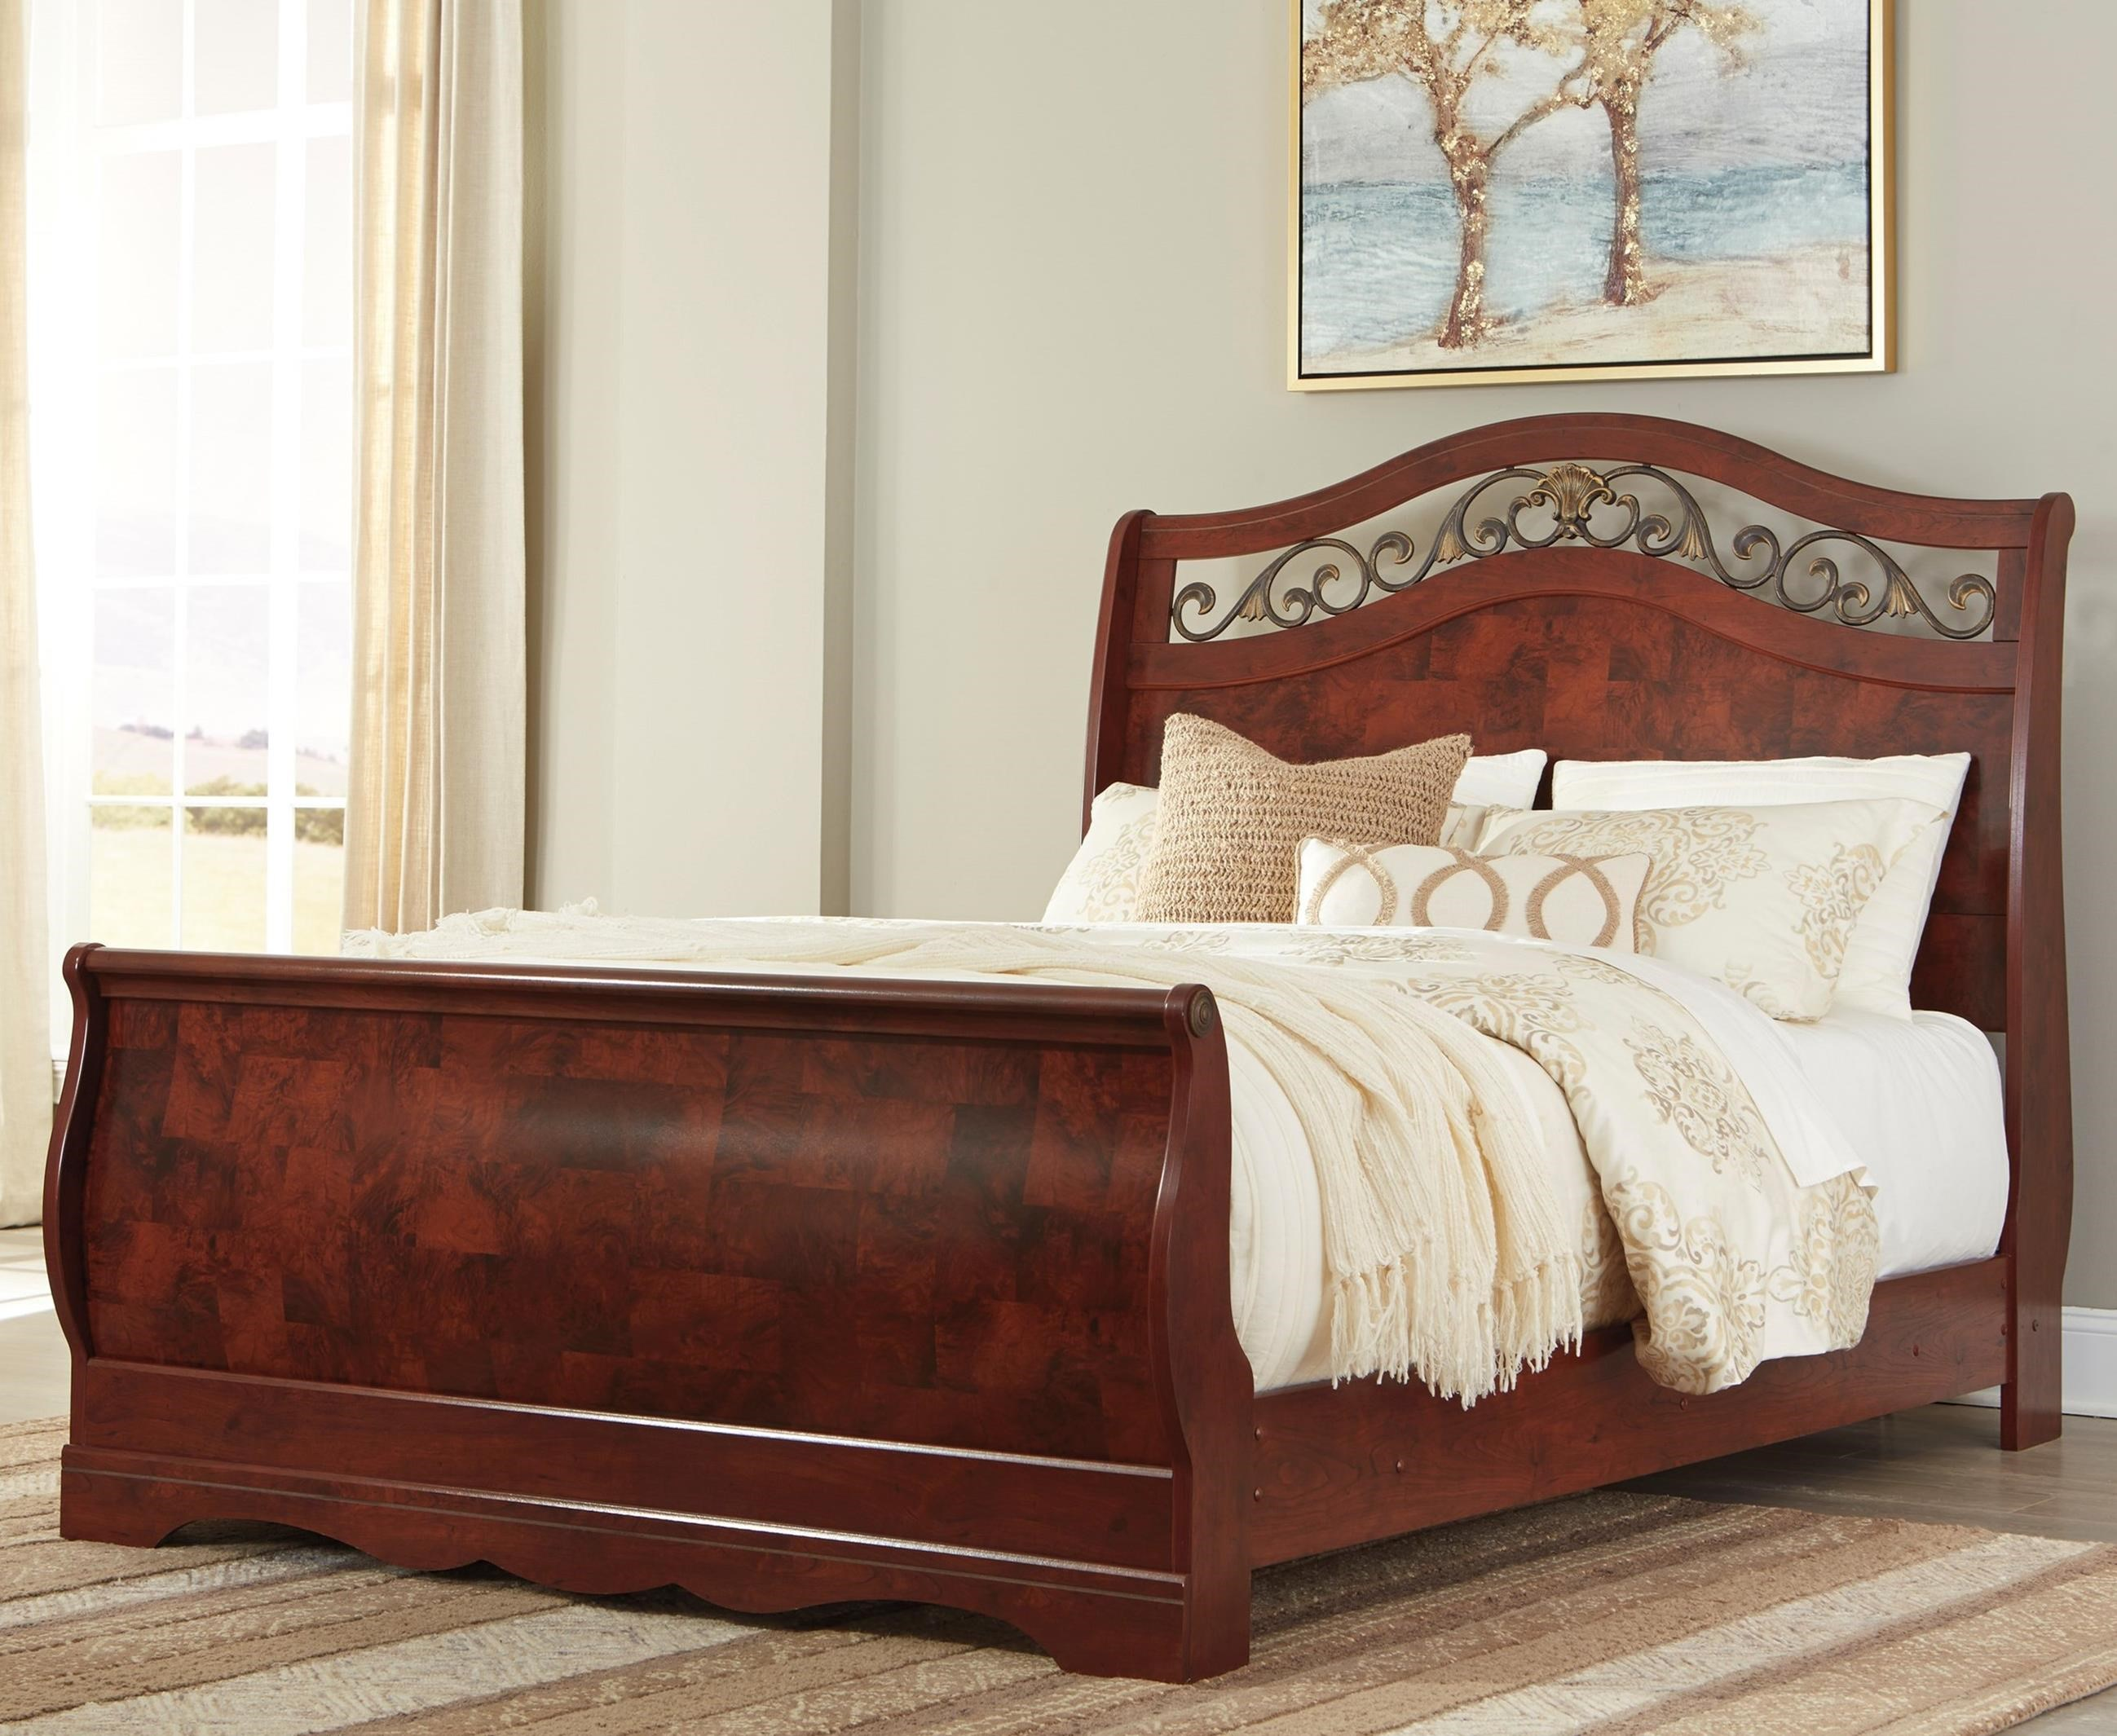 Signature Design By Ashley Furniture Delianna Traditional Queen Sleigh Bed Sam 39 S Appliance